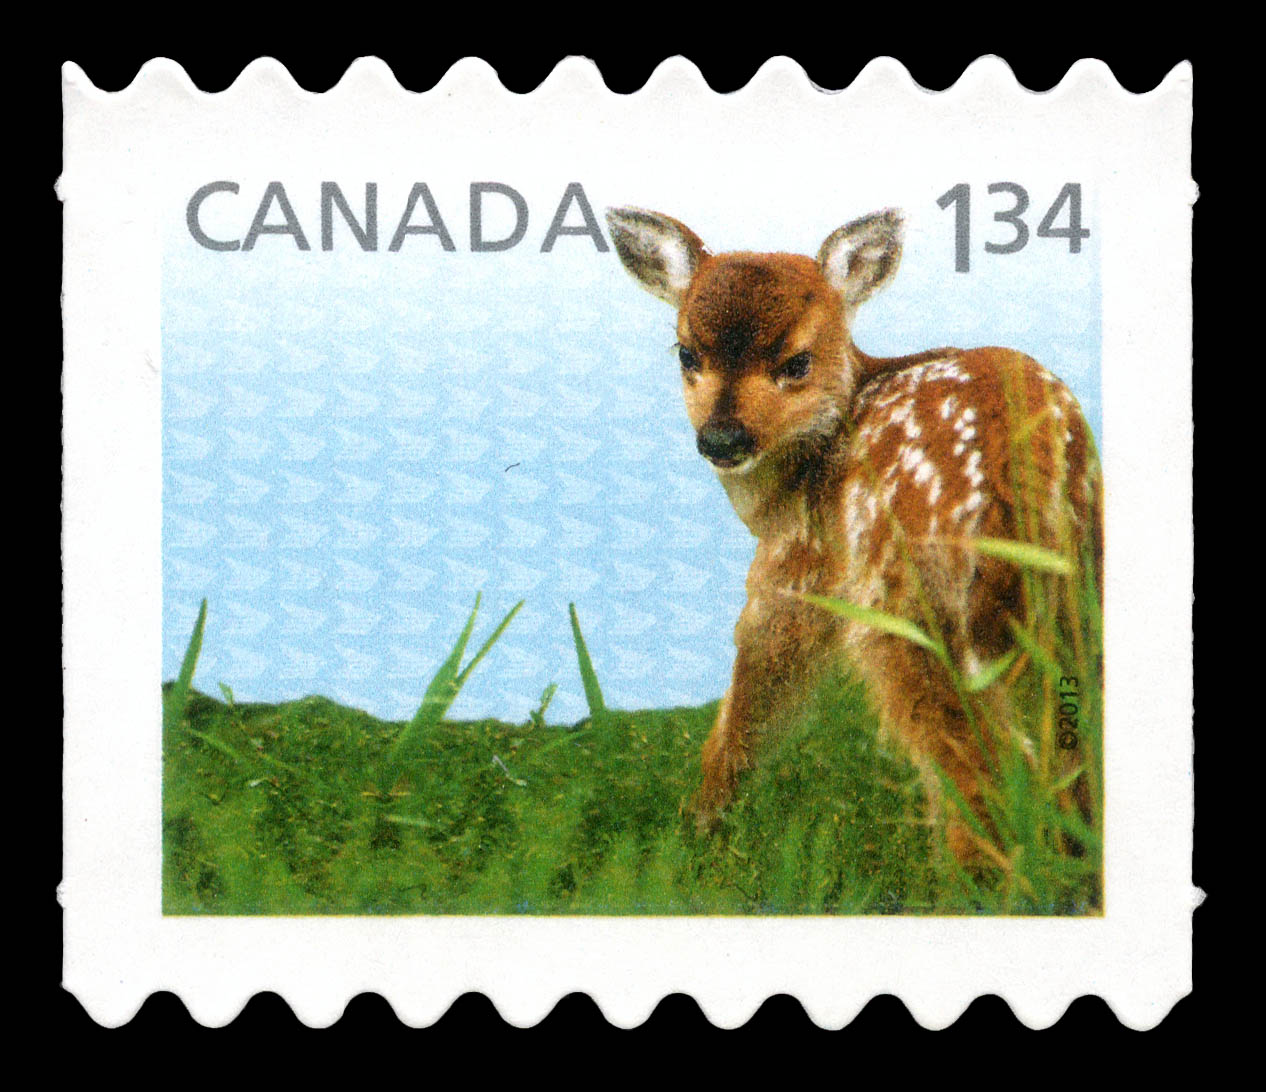 White-Tailed Deer - Baby Wildlife Canada Postage Stamp | Baby Wildlife - Definitives